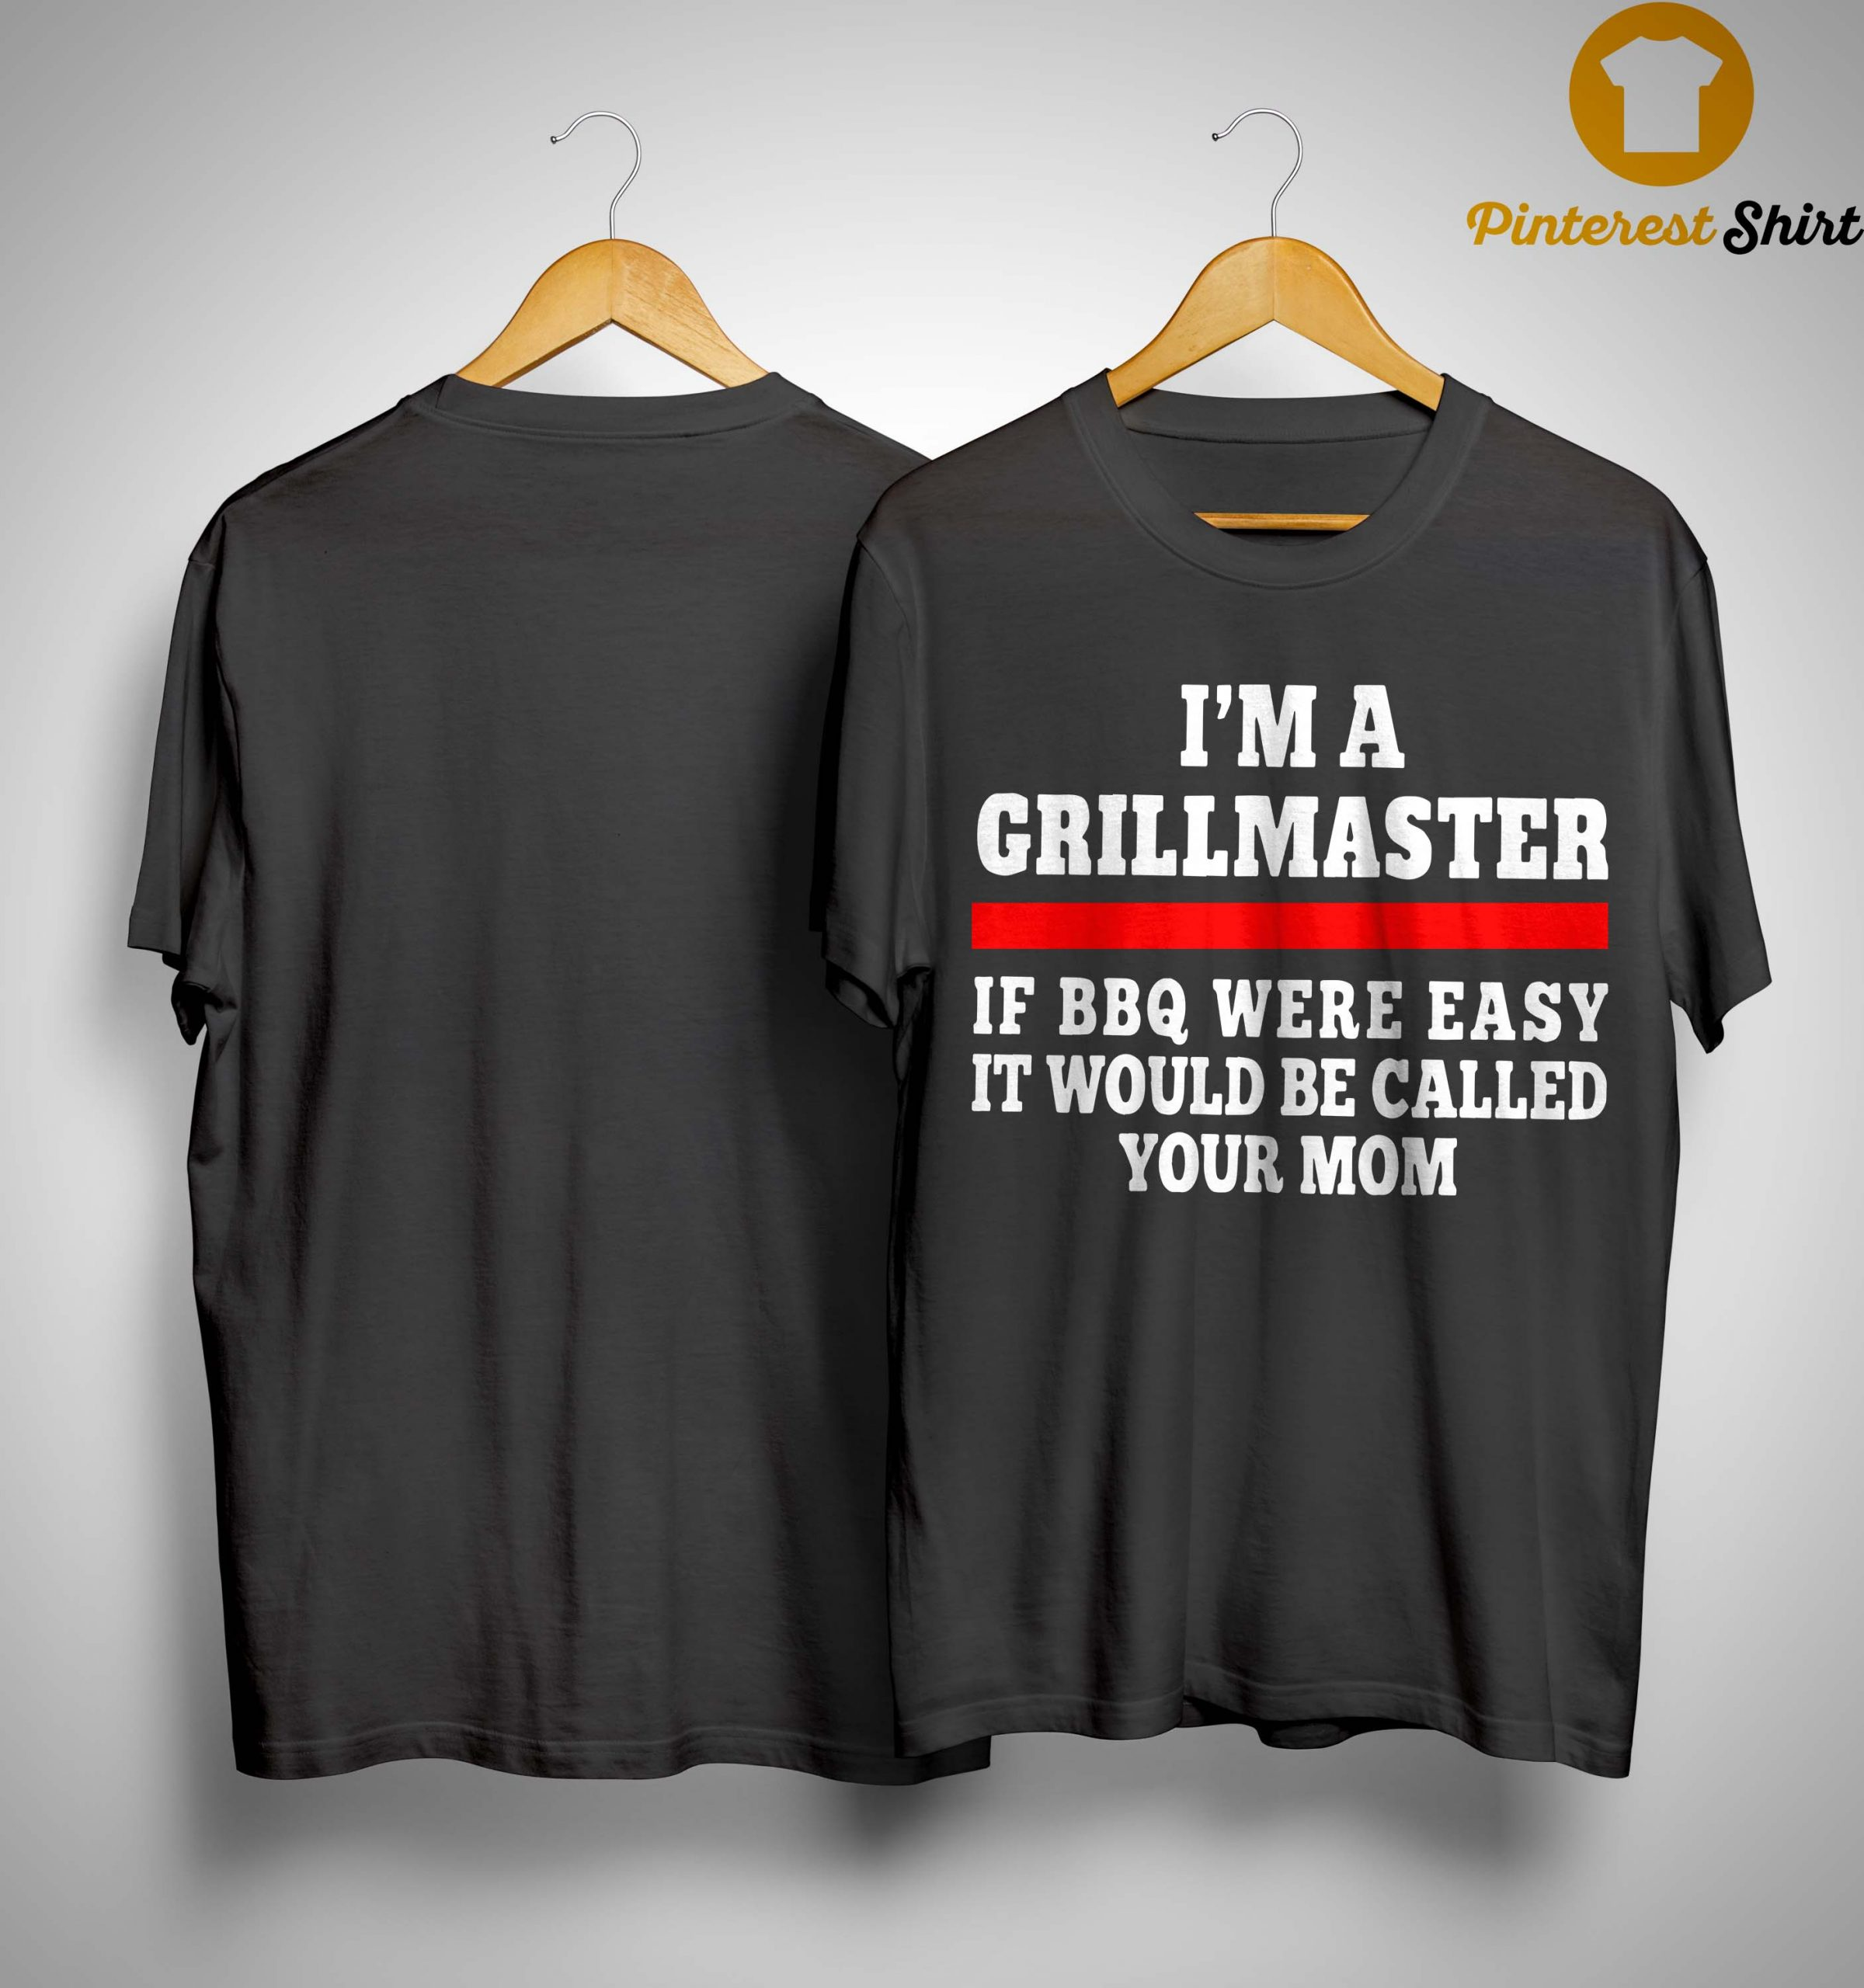 I'm A Grillmaster If Bbq Were Easy It Would Be Called Your Mom Shirt